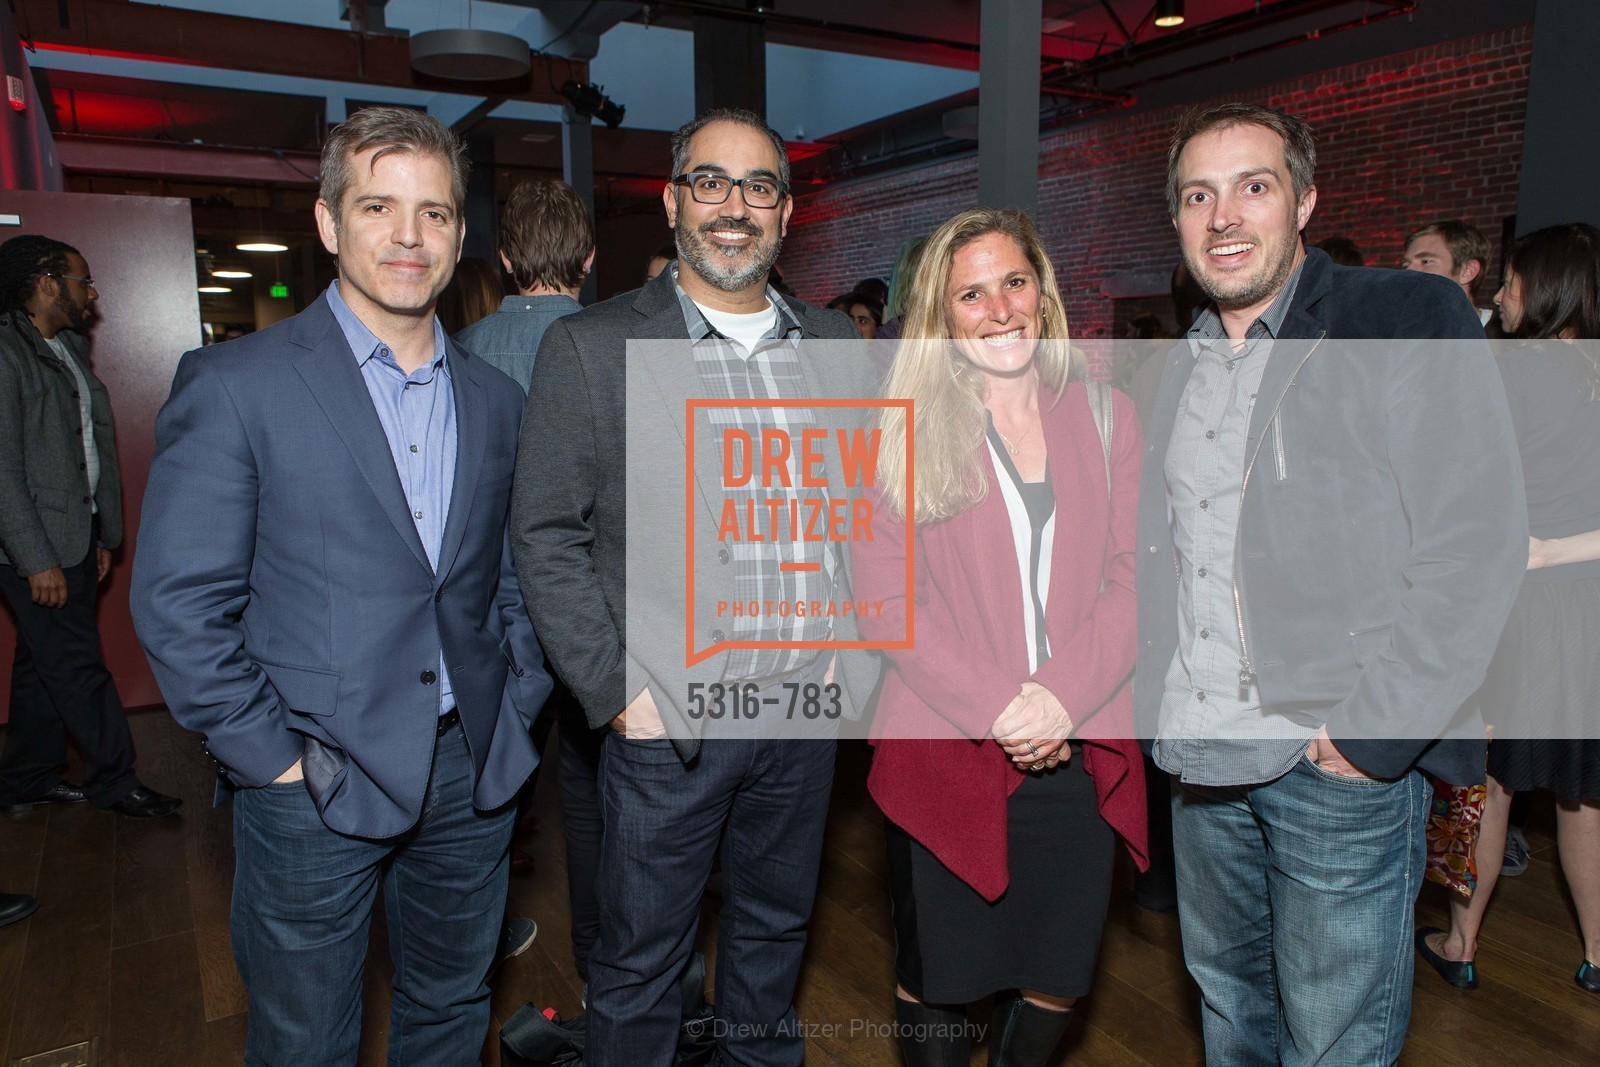 John Zissimos, Jason Luster, Suzanne DiBianca, Craig Stull, HBO'S SILICON VALLEY San Francisco Screening, US, April 9th, 2015,Drew Altizer, Drew Altizer Photography, full-service agency, private events, San Francisco photographer, photographer california